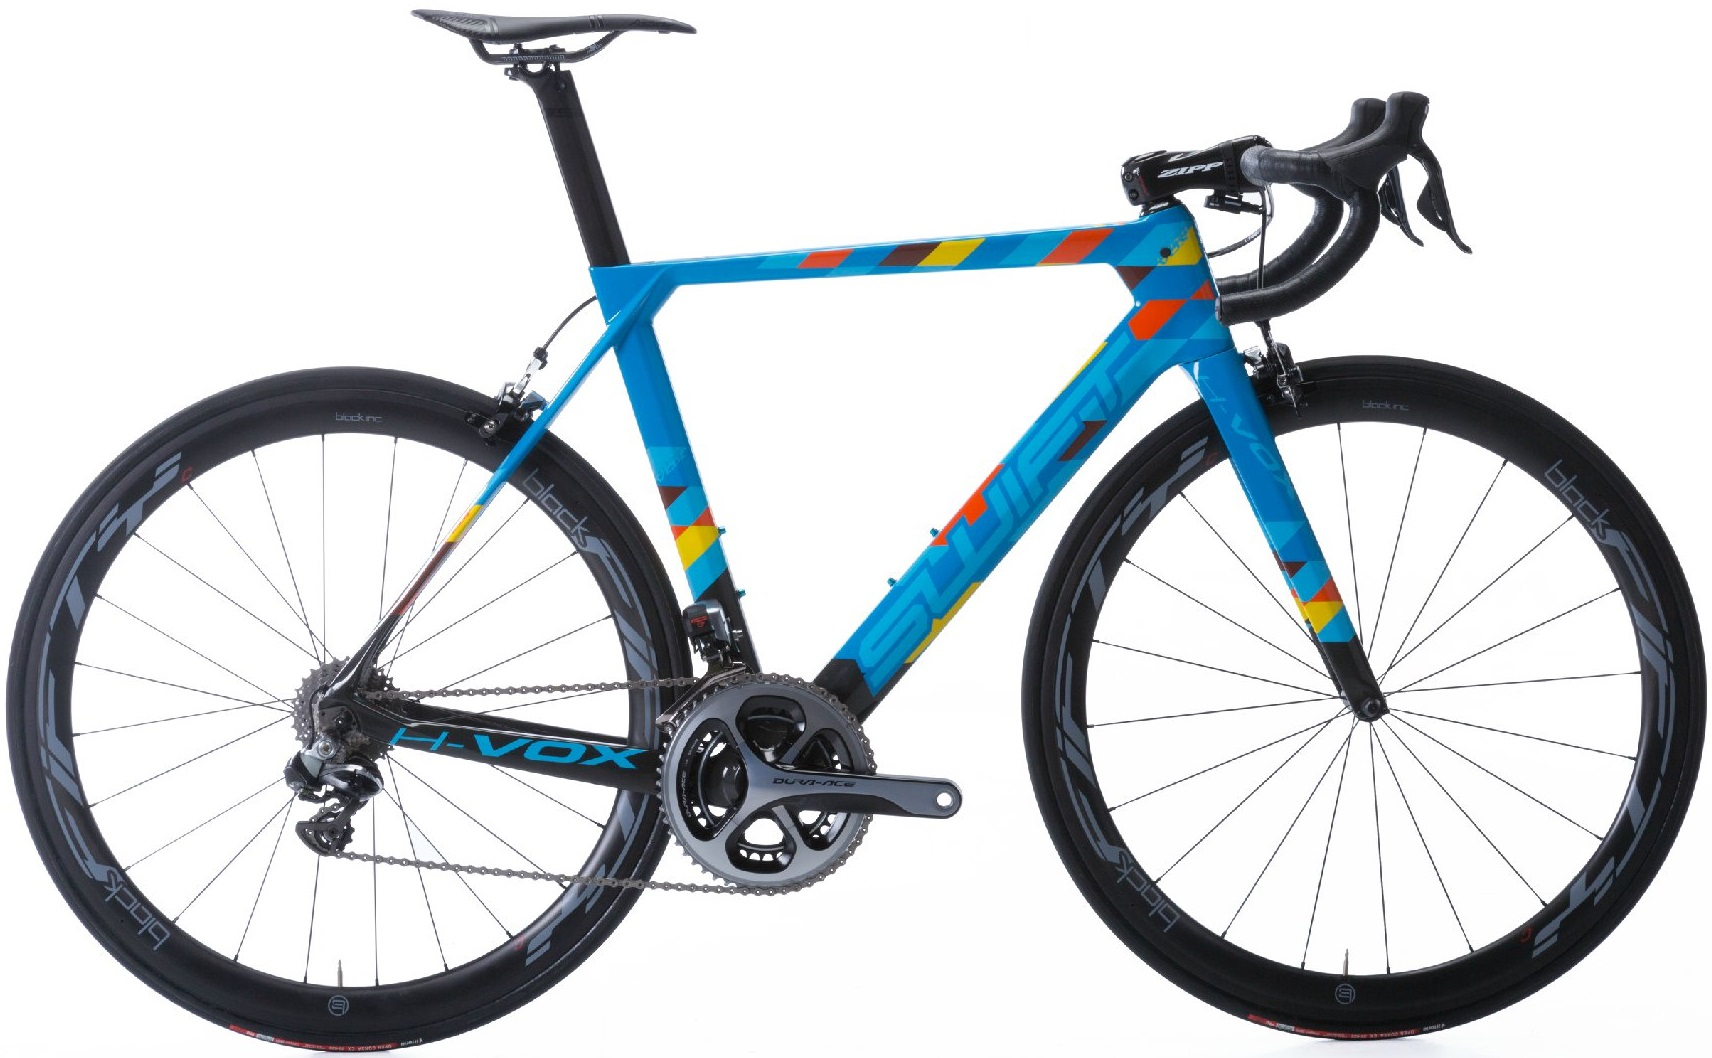 2016 Swift Carbon Hypervox aero light blue dura ace 4neuroticarnutz2016 Swift Carbon Hypervox aero light blue dura ace 42015 Cipollini RB800 blue campy lightweight